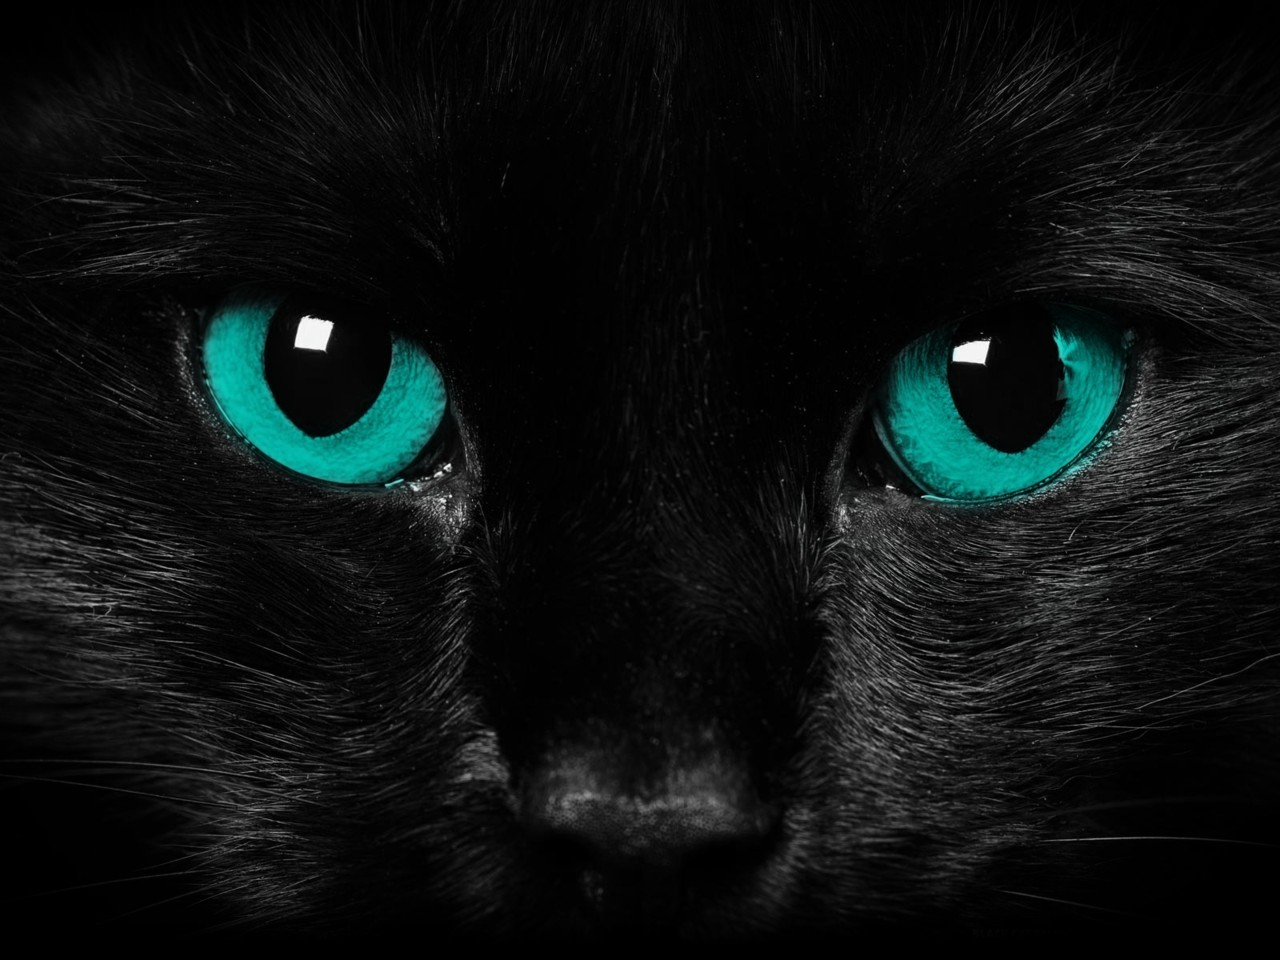 animals images black-cat-blue-eyes-cat-wallpaper. hd wallpaper and